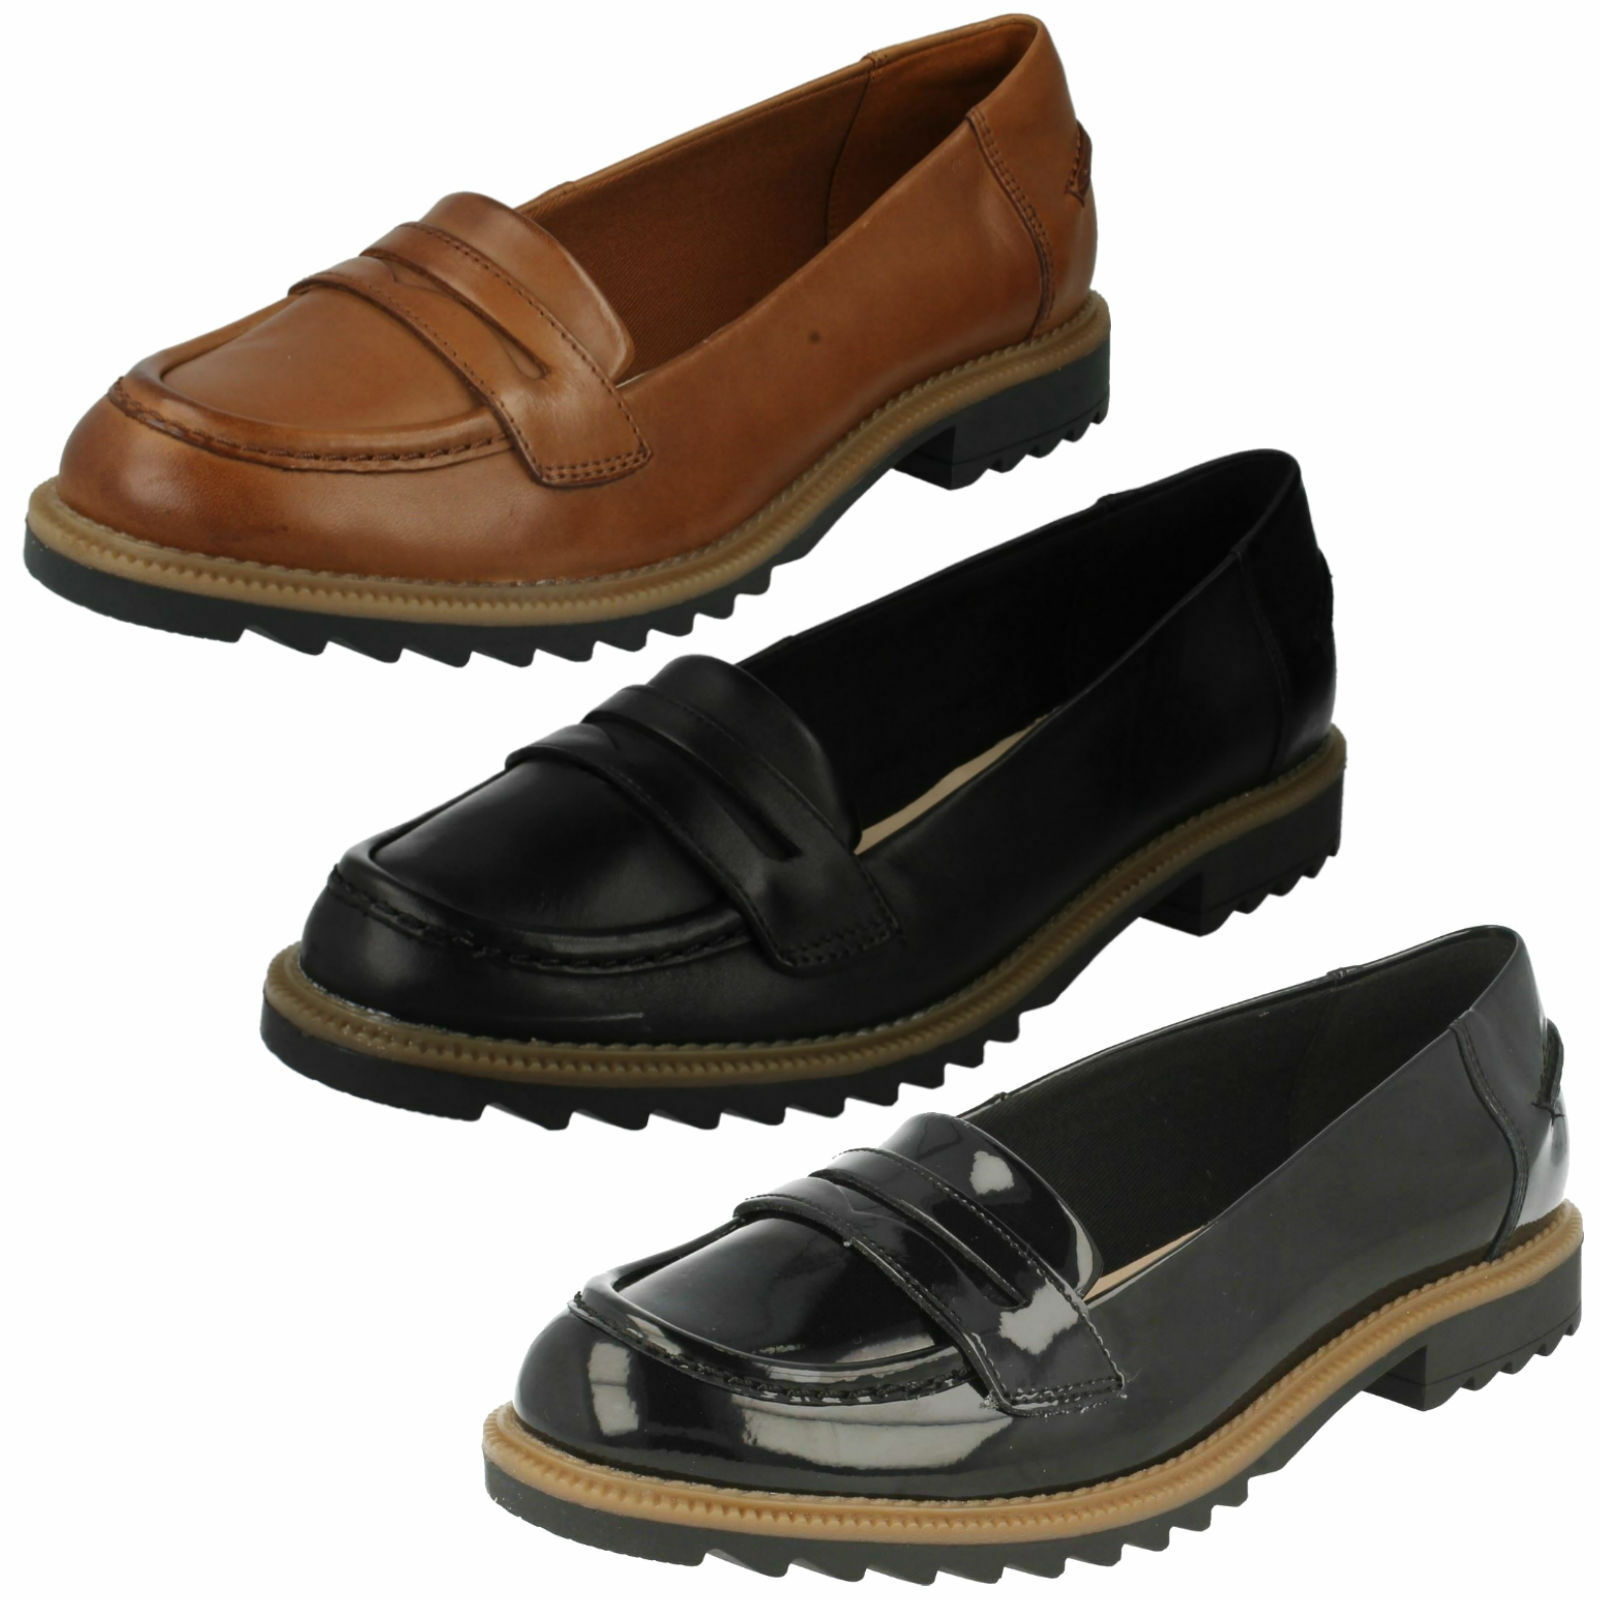 LADIES CLARKS LEATHER SLIP ON CASUAL OFFICE LOAFERS schuhe GRIFFIN MILLY Größe